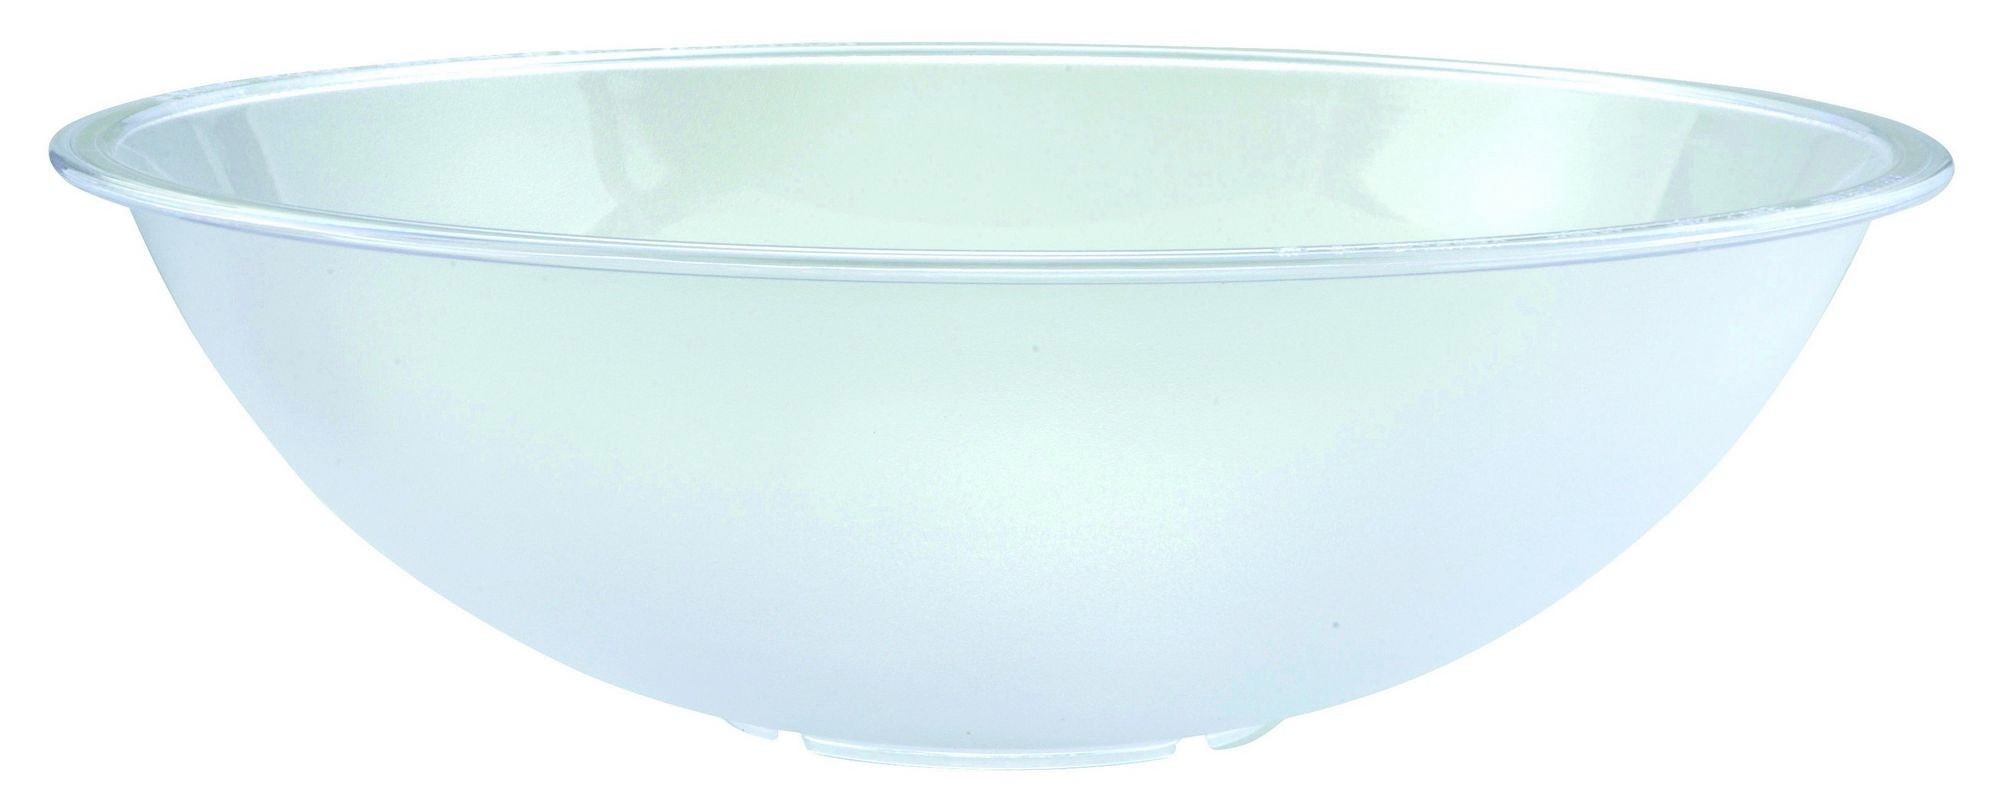 Polycarbonate Pebbled Serving Bowl - 18-7/10